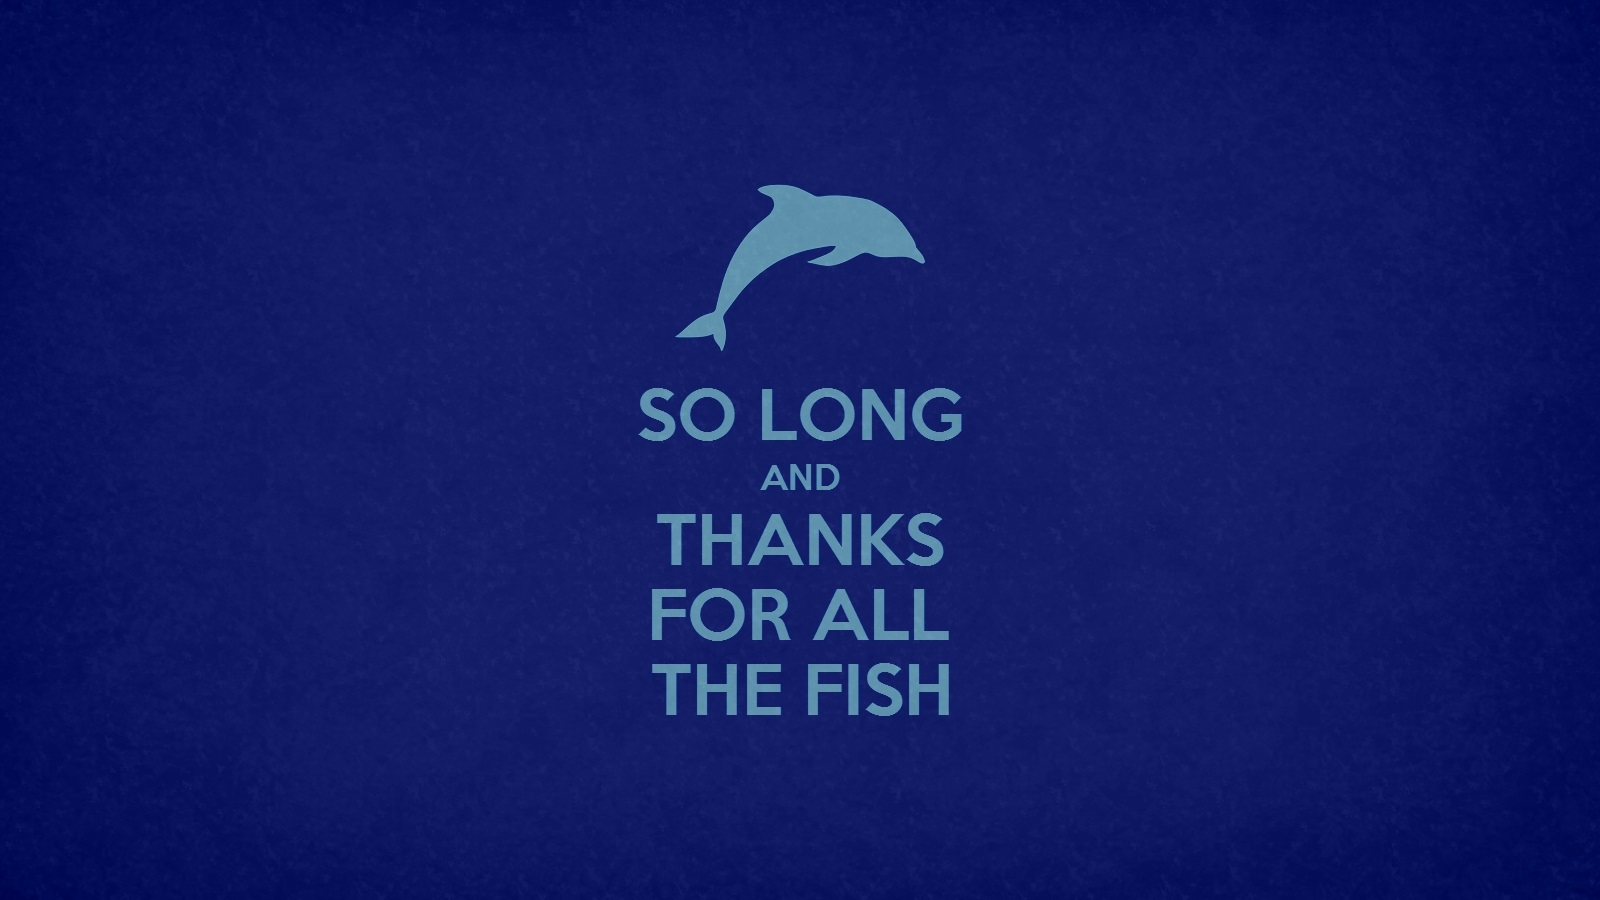 Thanks for the fish